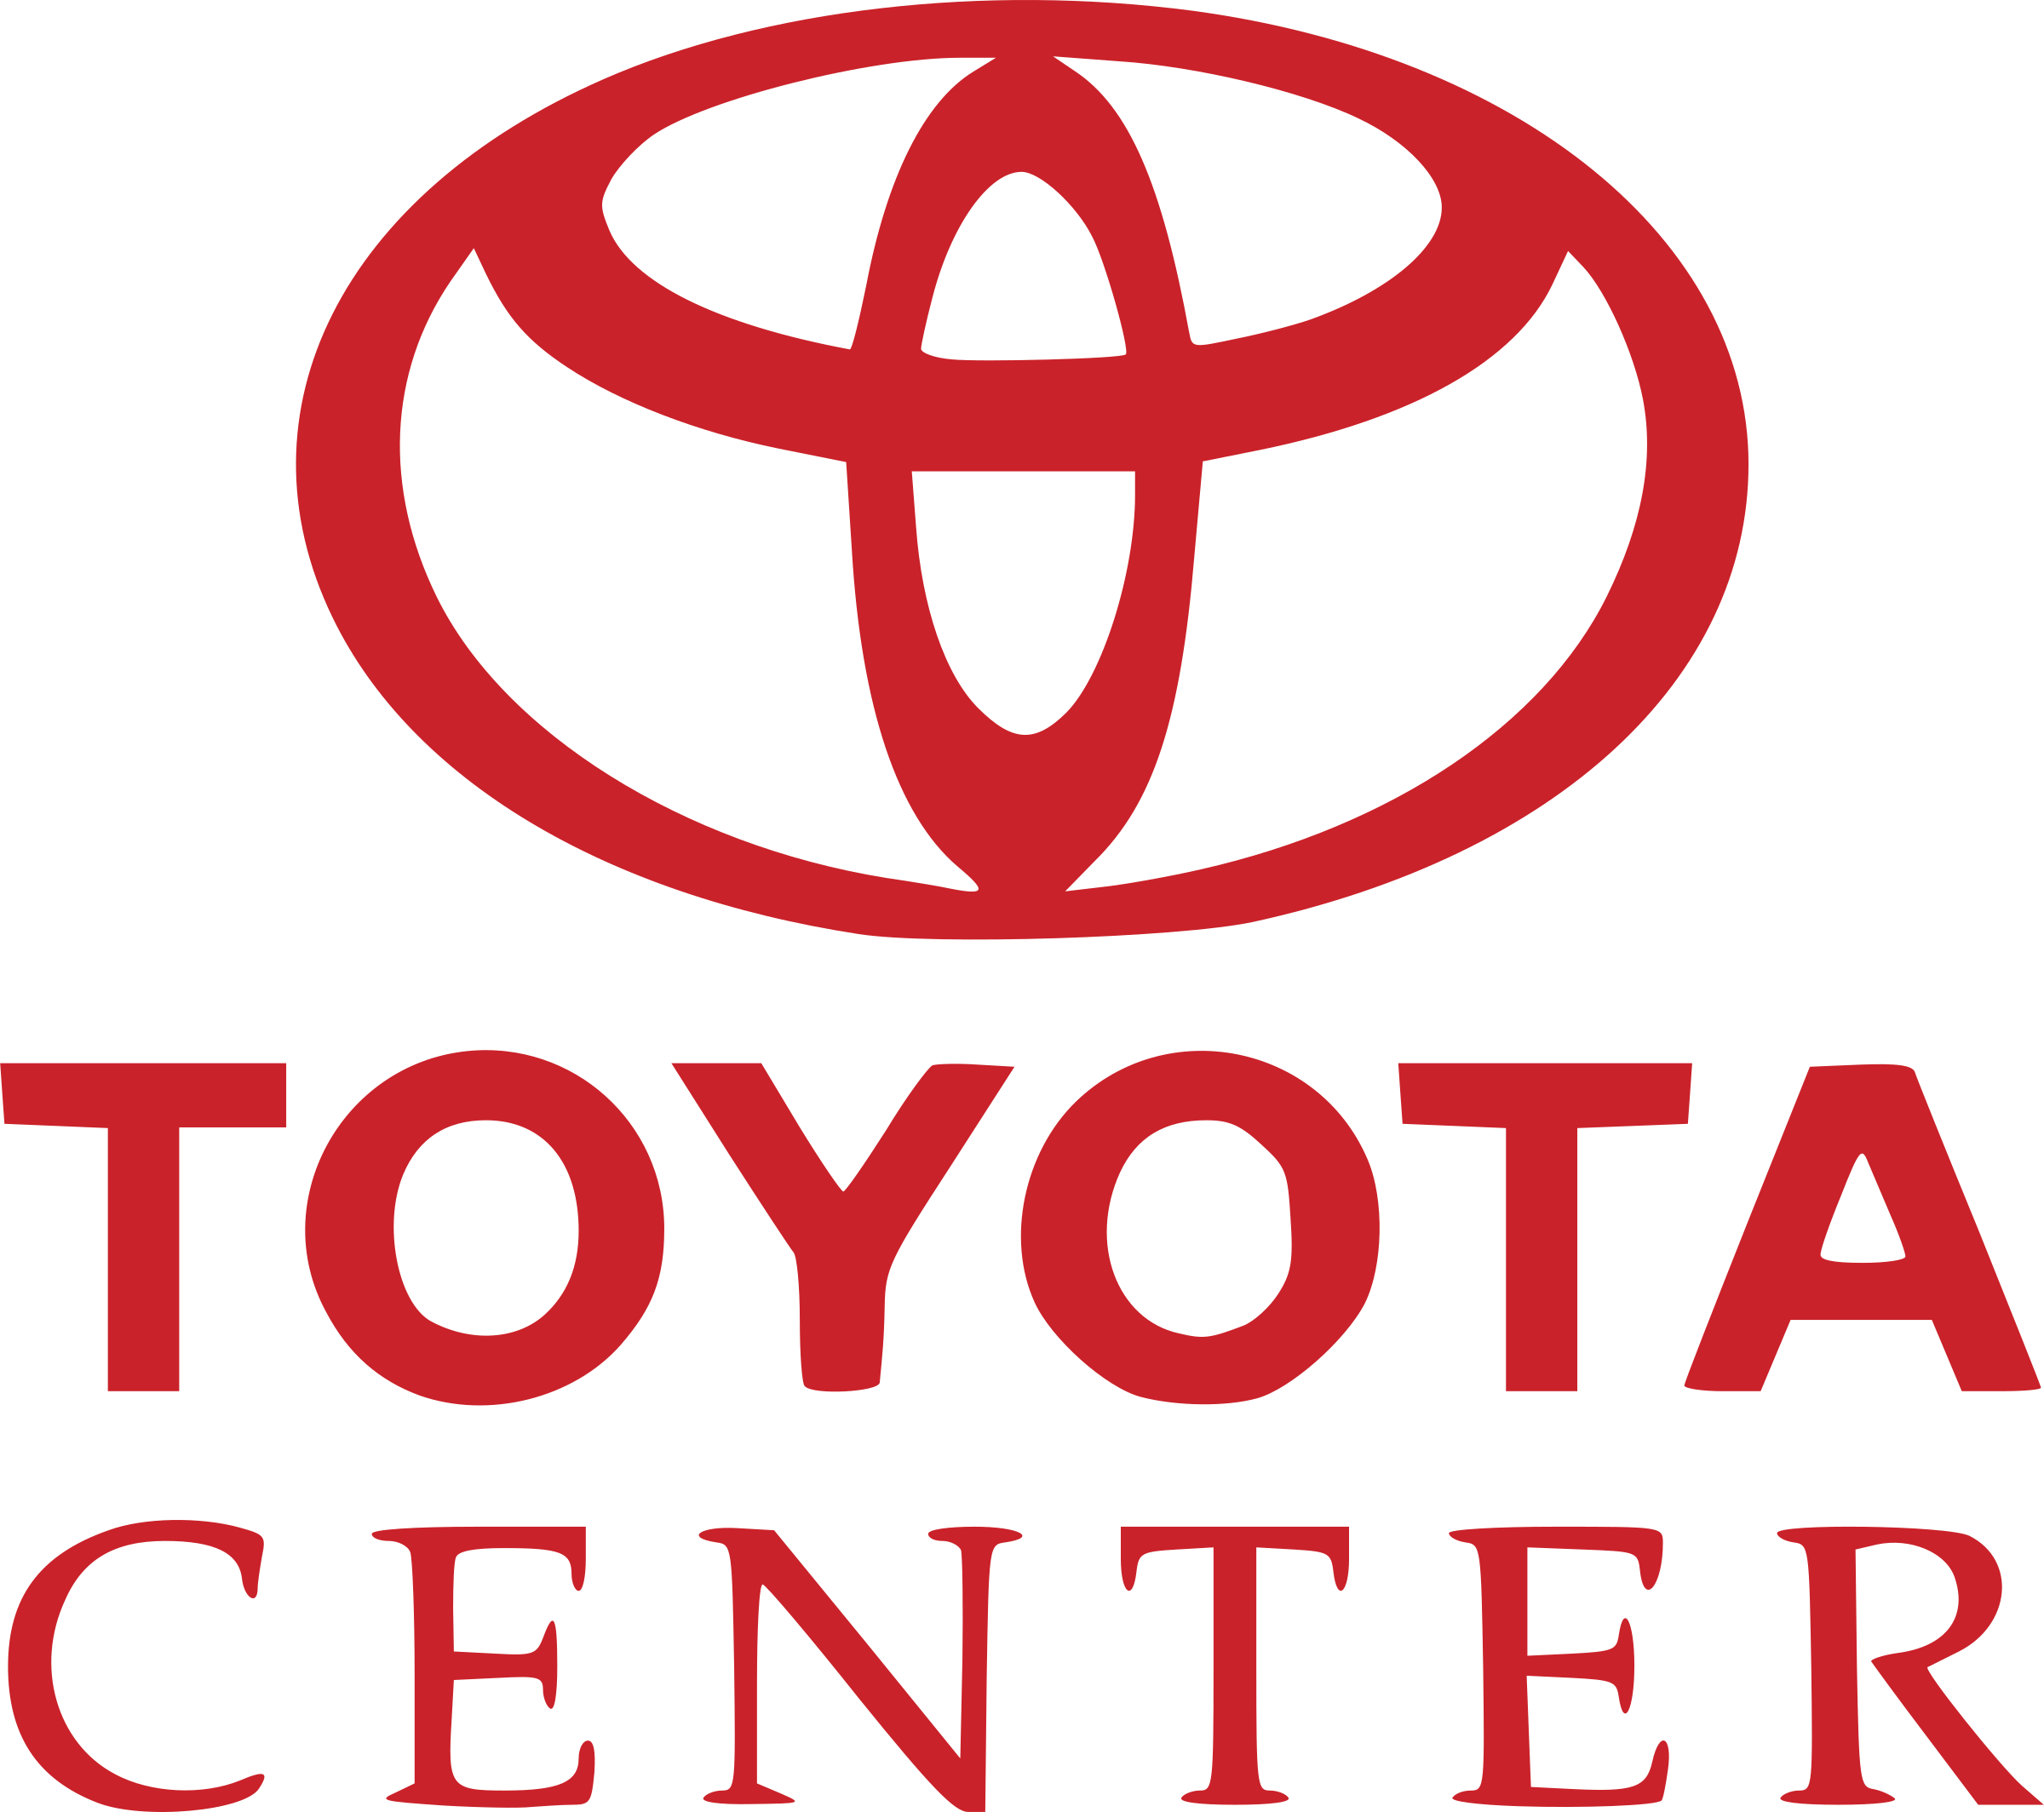 toyota center logo png transparent amp svg vector freebie